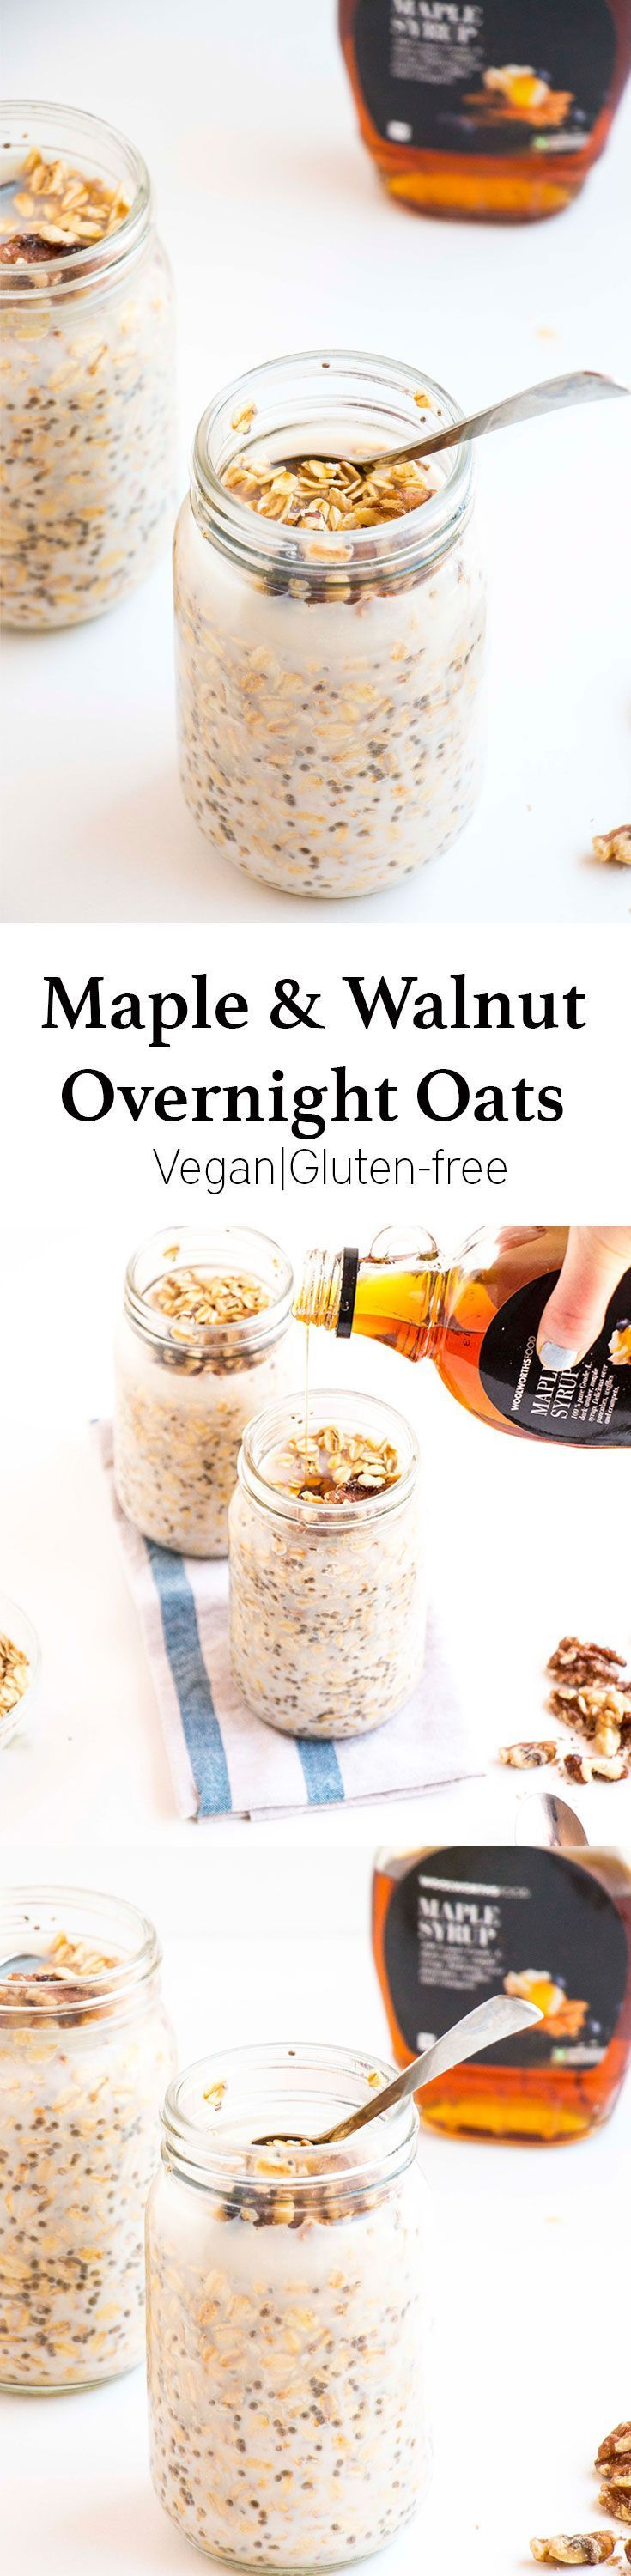 I love this overnight oats recipe not only because it is incredibly delicious, but because it only takes 5min to make and is incredibly healthy. Perfect as an on the go breakfast.